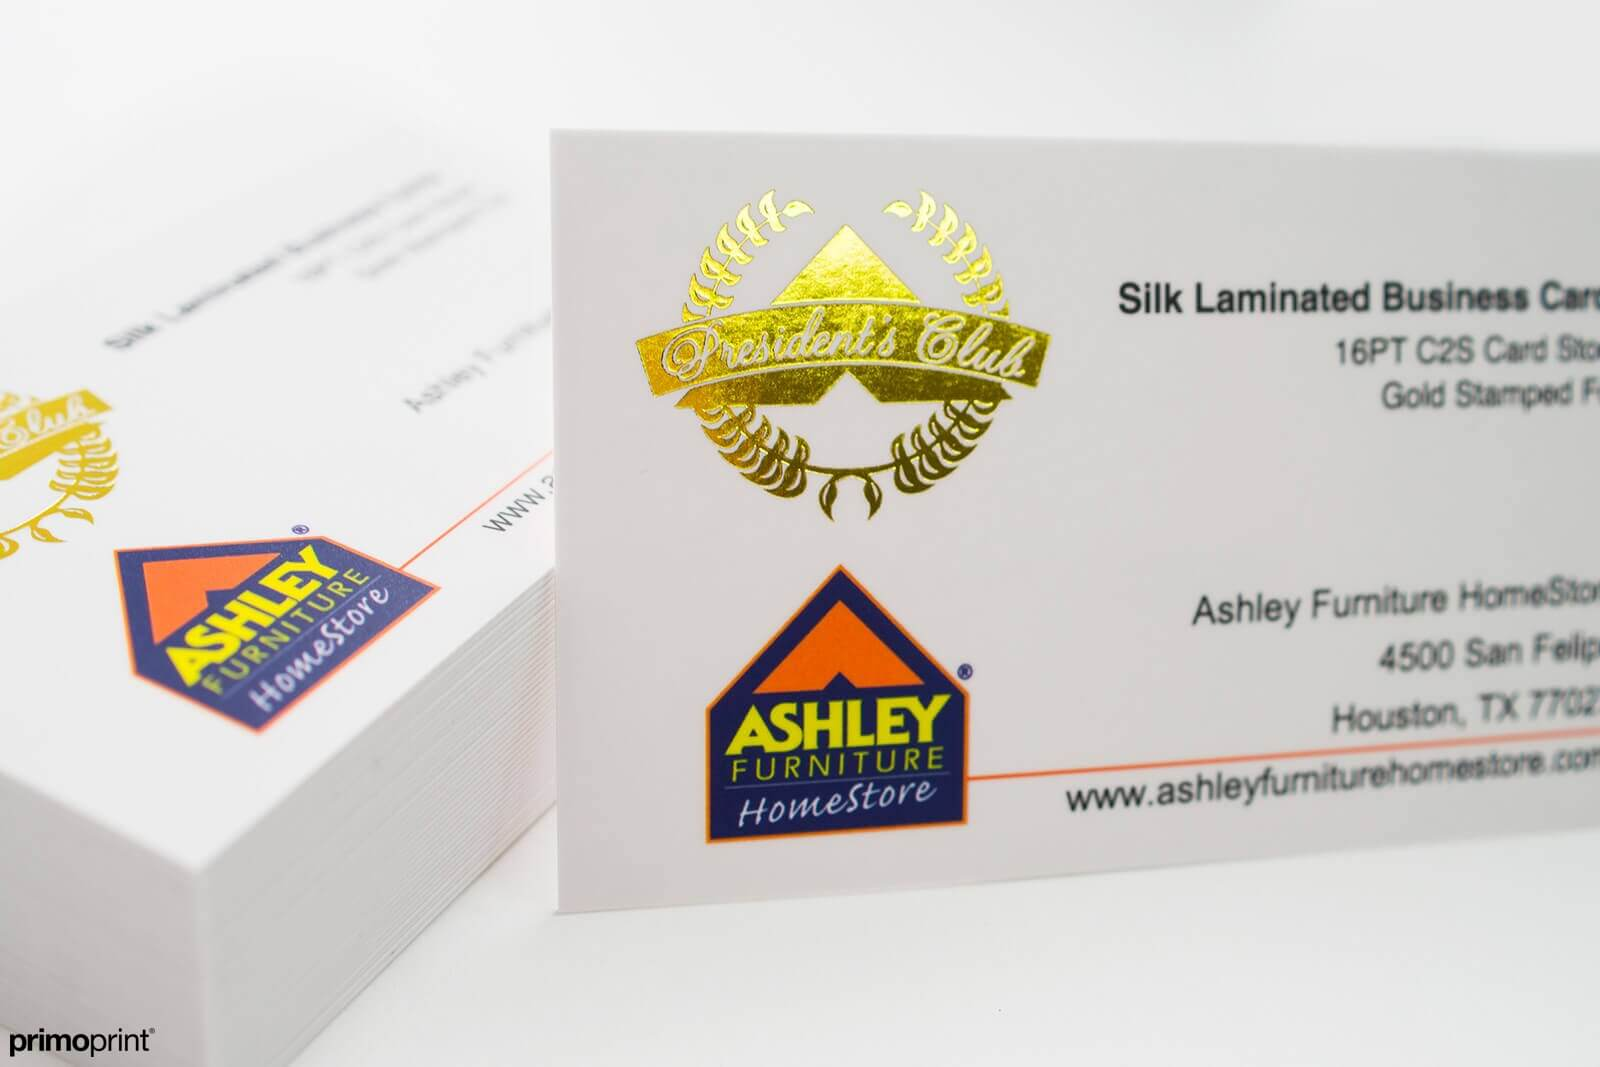 Gold Stamped Foil Business card